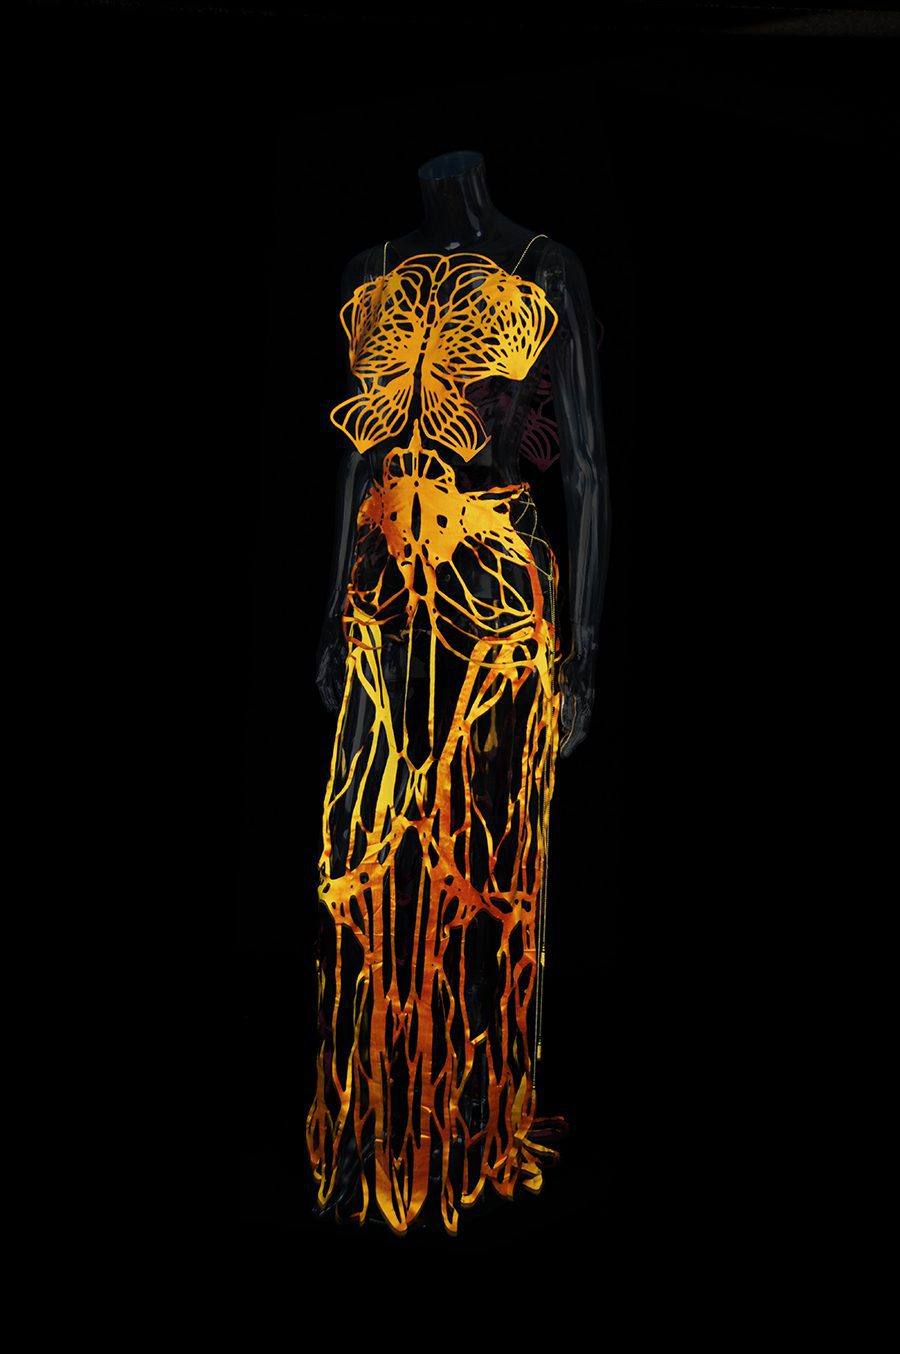 2017-Amy-Karle-Internal-Collection-yellow-silk-dress-based-on-ligaments-05